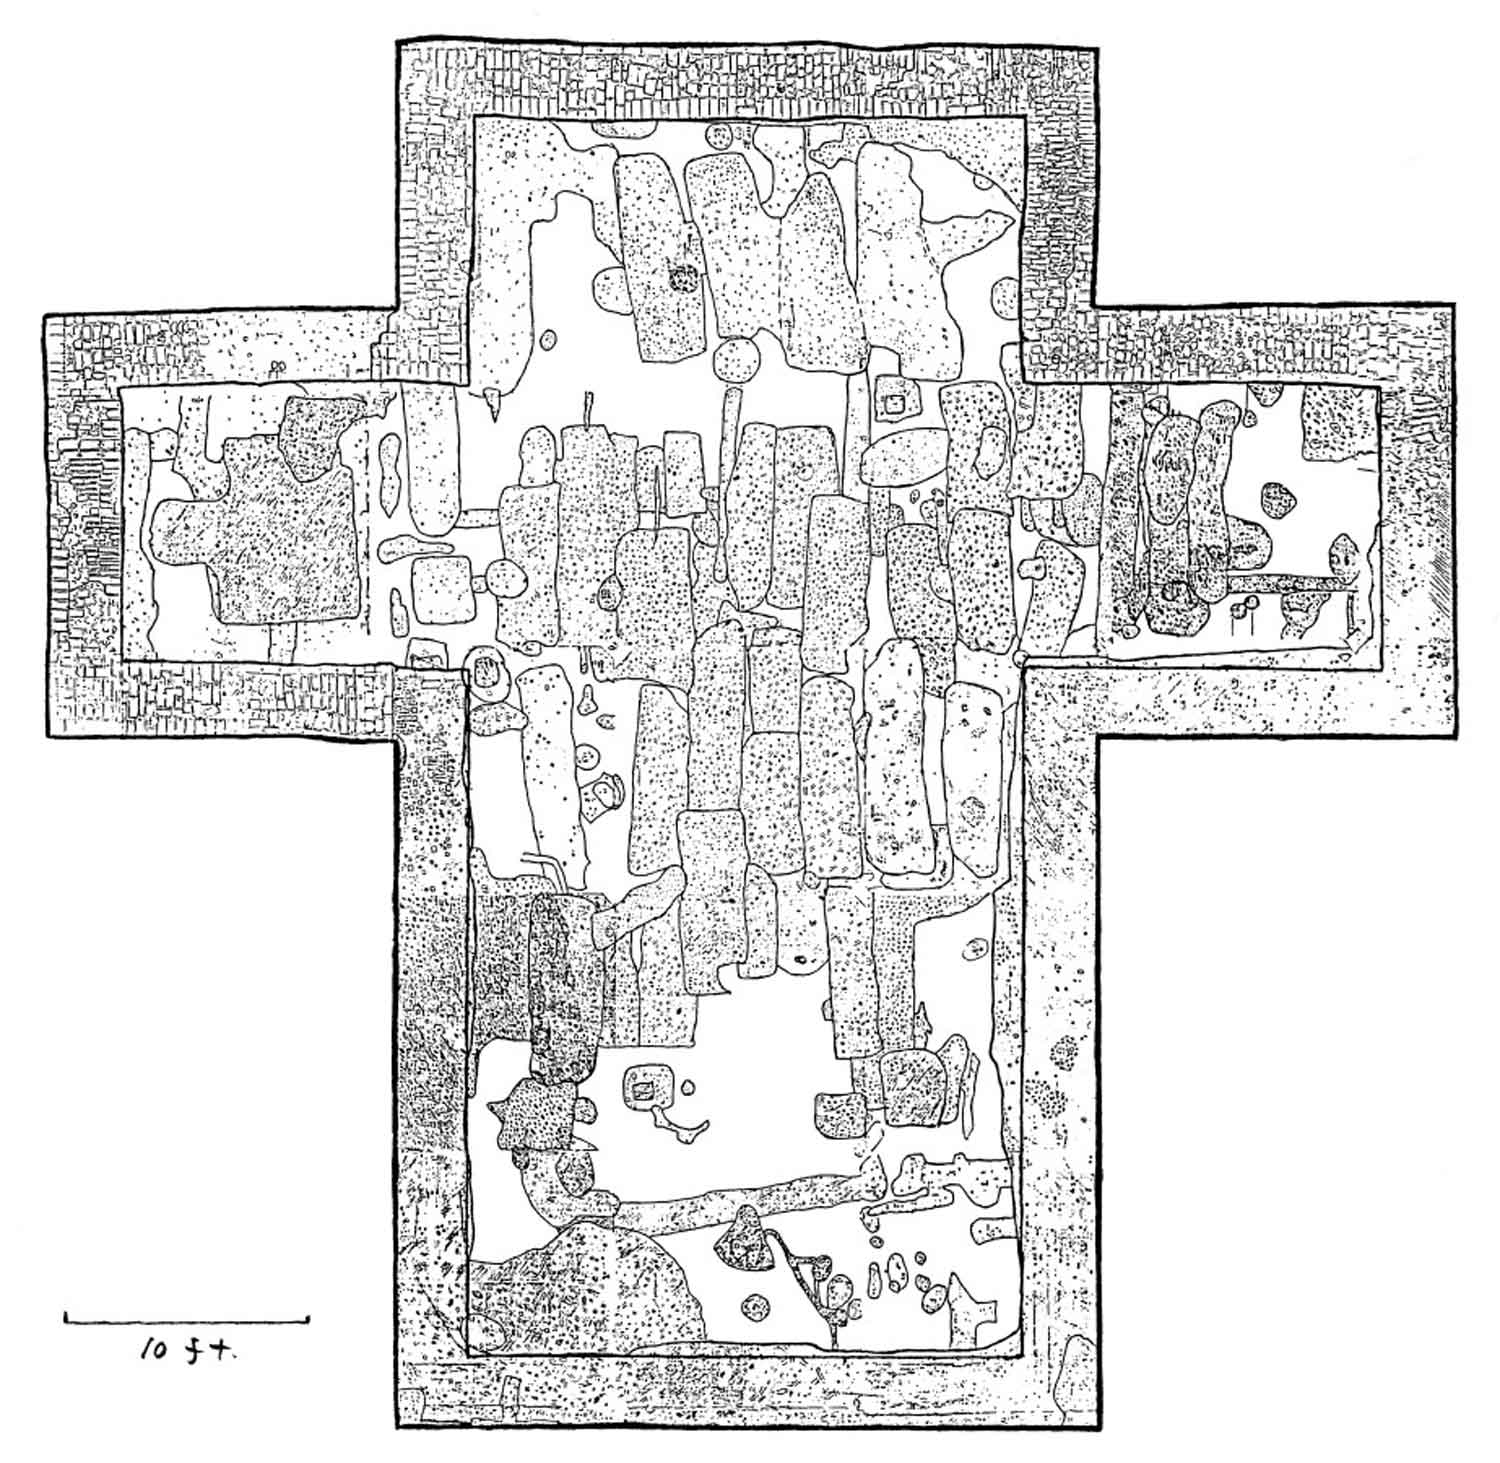 Plan view drawing of the Brick Chapel showing the burial shafts of some of Maryland's founders